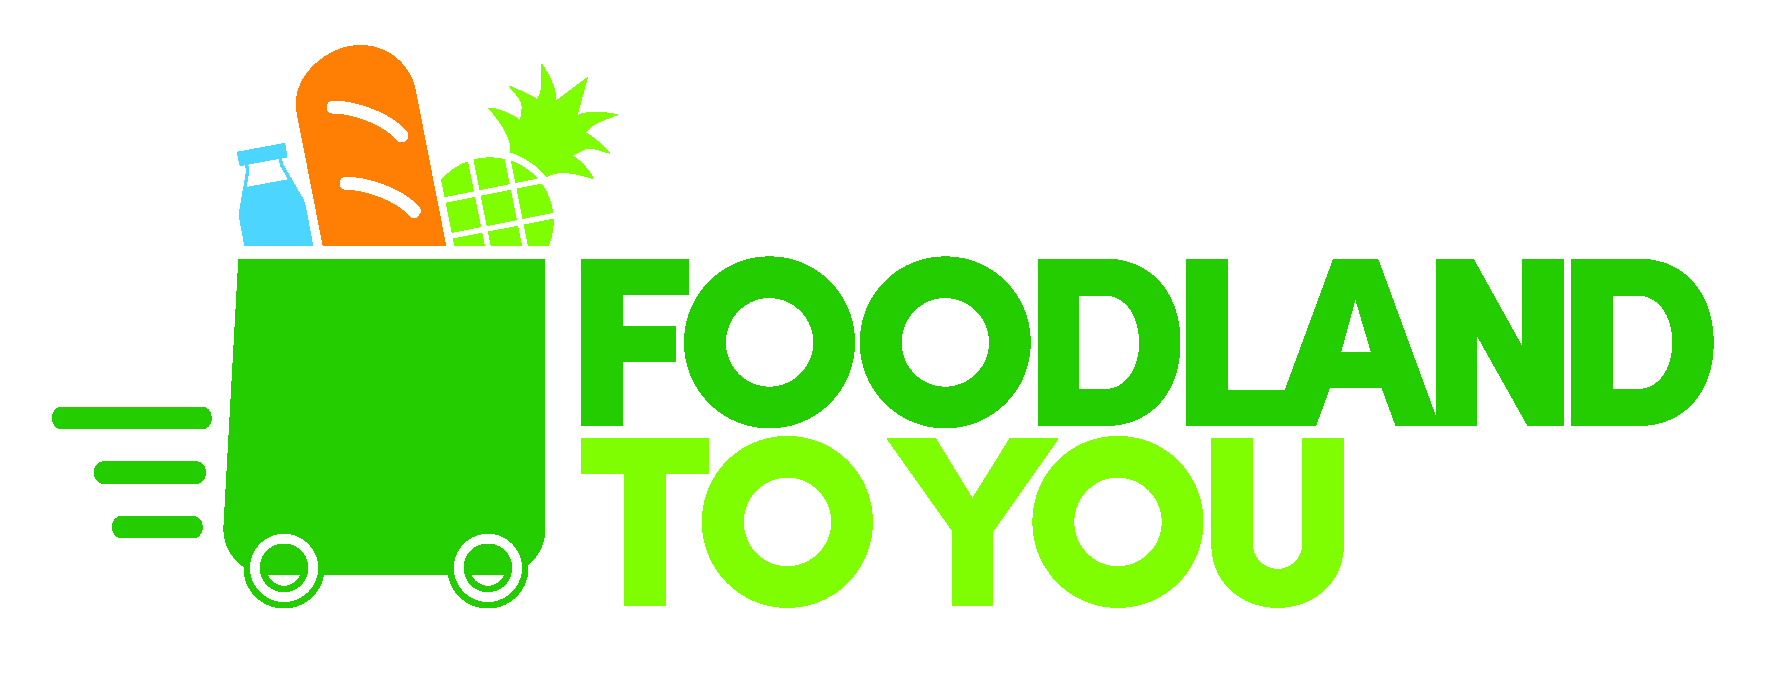 Foodland To You logo